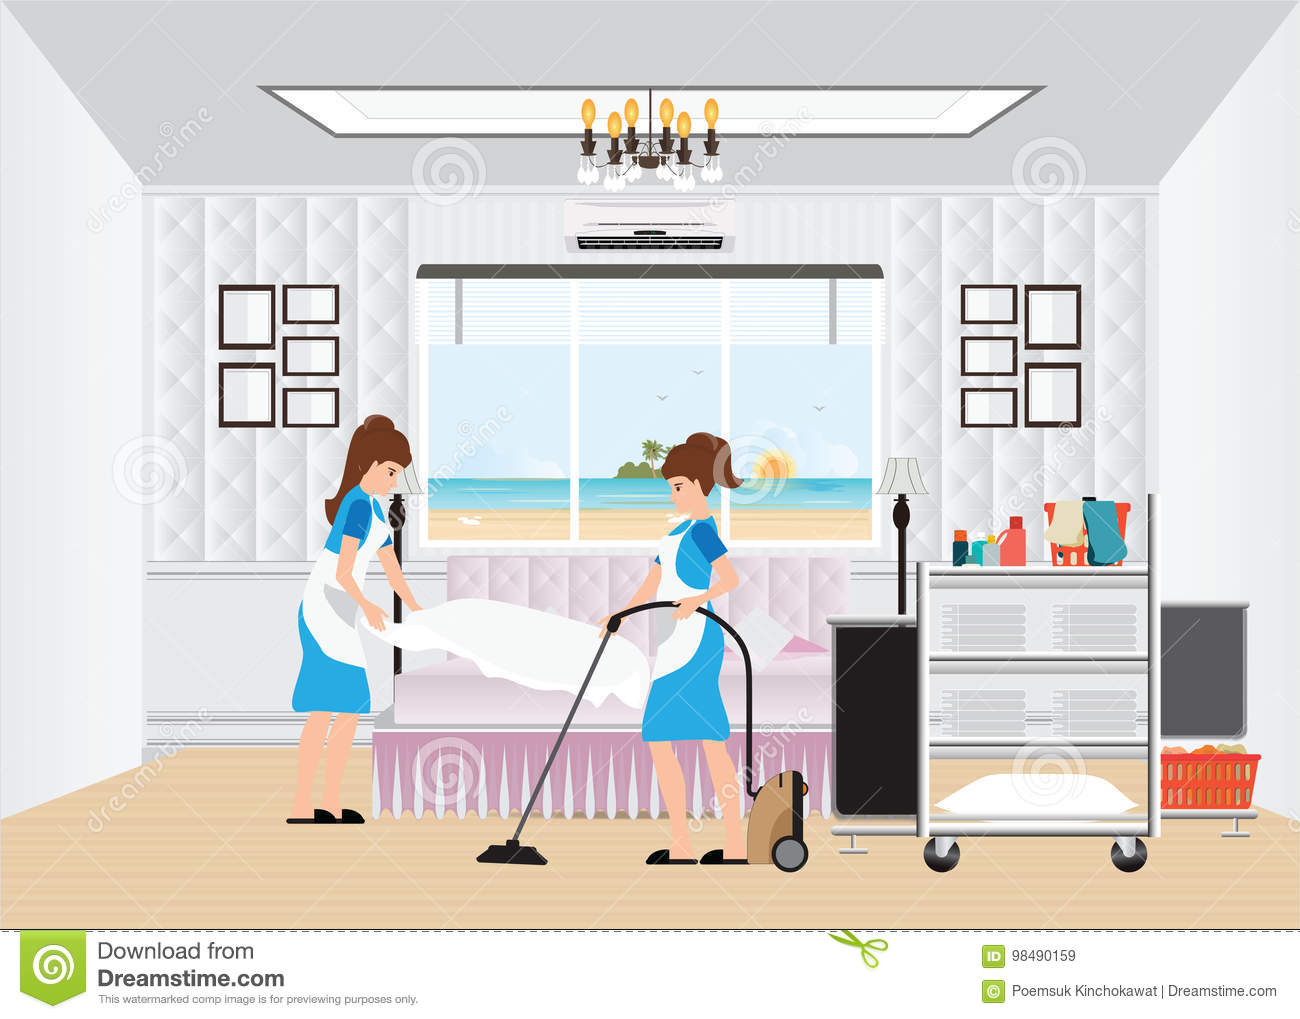 Maid Cleaning Hotel Room With Housekeeping Trolley. Stock Vector